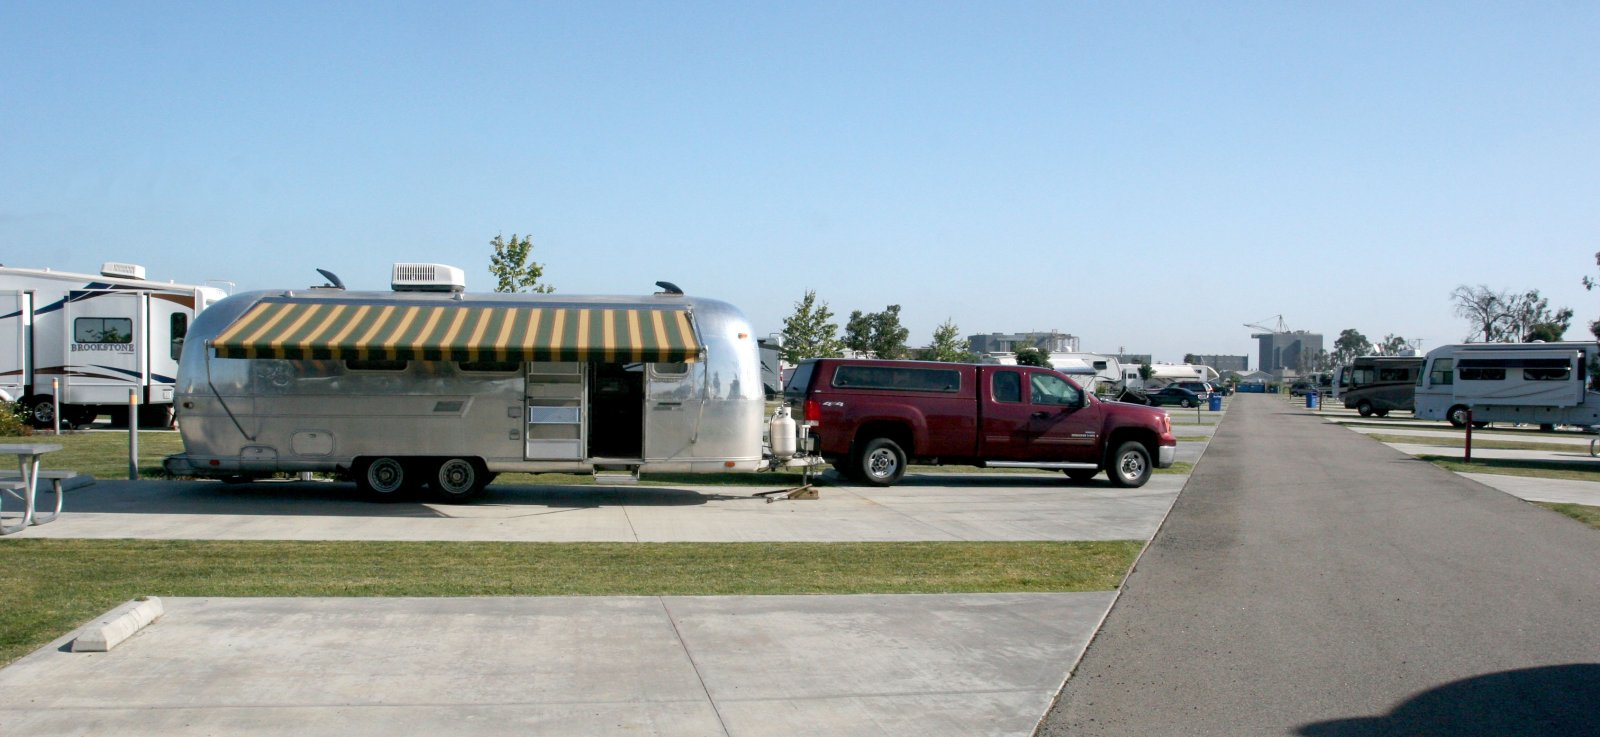 Click image for larger version  Name:IMG_0706 seal beach rv.jpg Views:64 Size:168.6 KB ID:100656